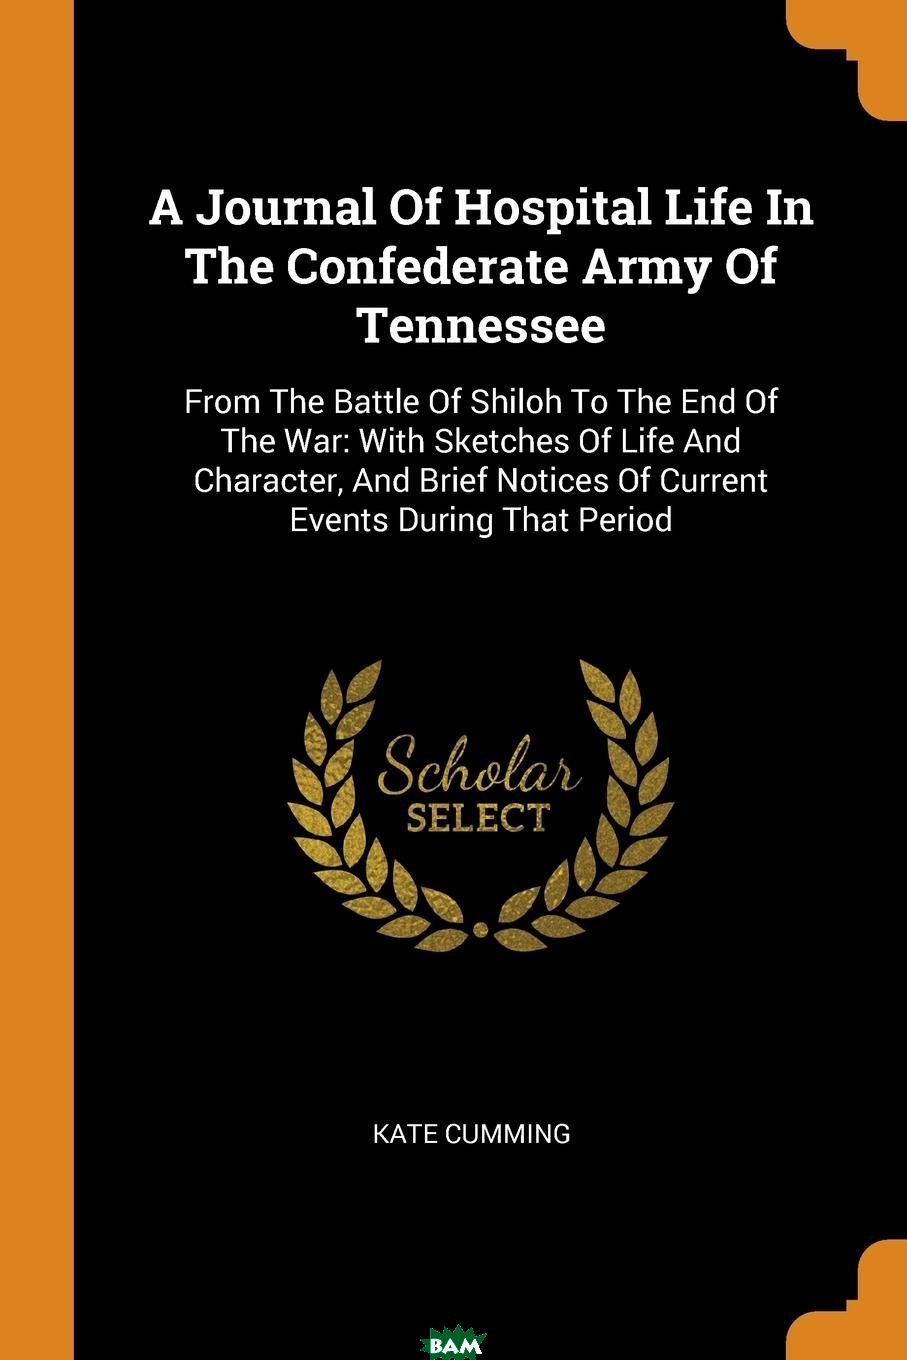 Купить A Journal Of Hospital Life In The Confederate Army Of Tennessee. From The Battle Of Shiloh To The End Of The War: With Sketches Of Life And Character, And Brief Notices Of Current Events During That, Kate Cumming, 9780353210189